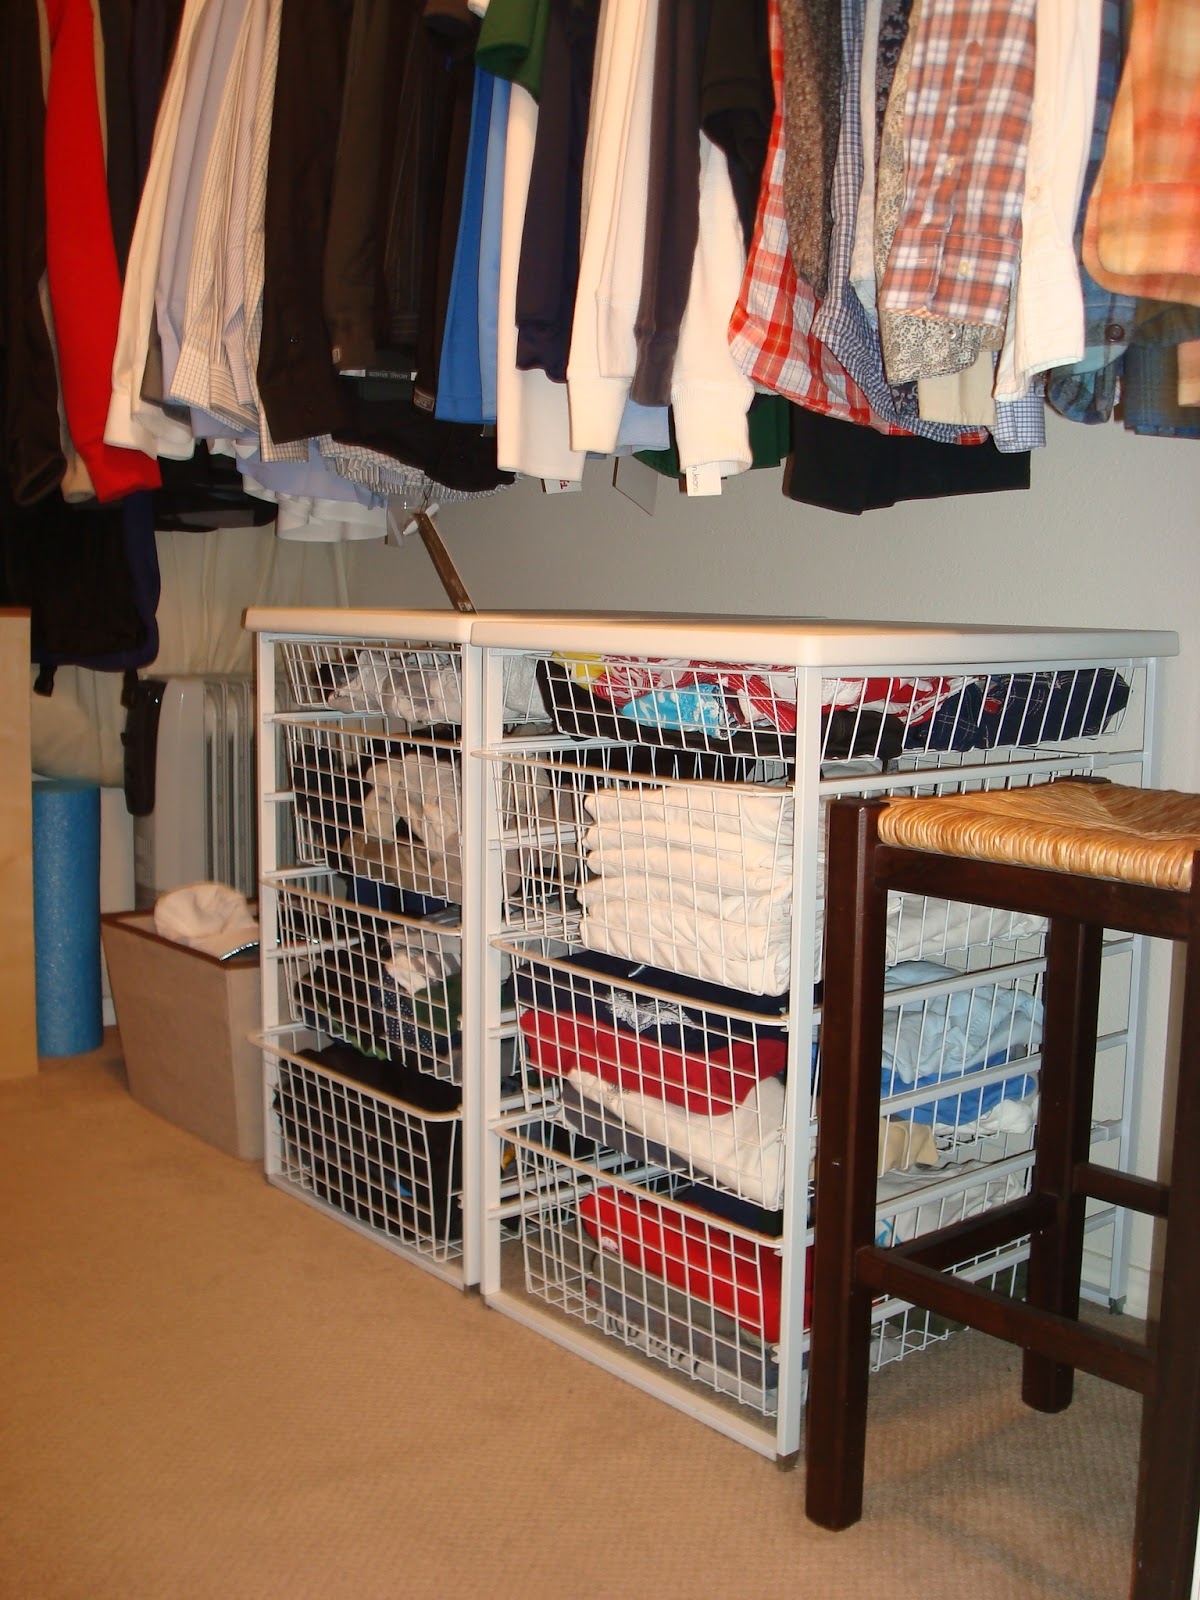 Deep Closet Organization Ideas Part - 48: Morganize With Me